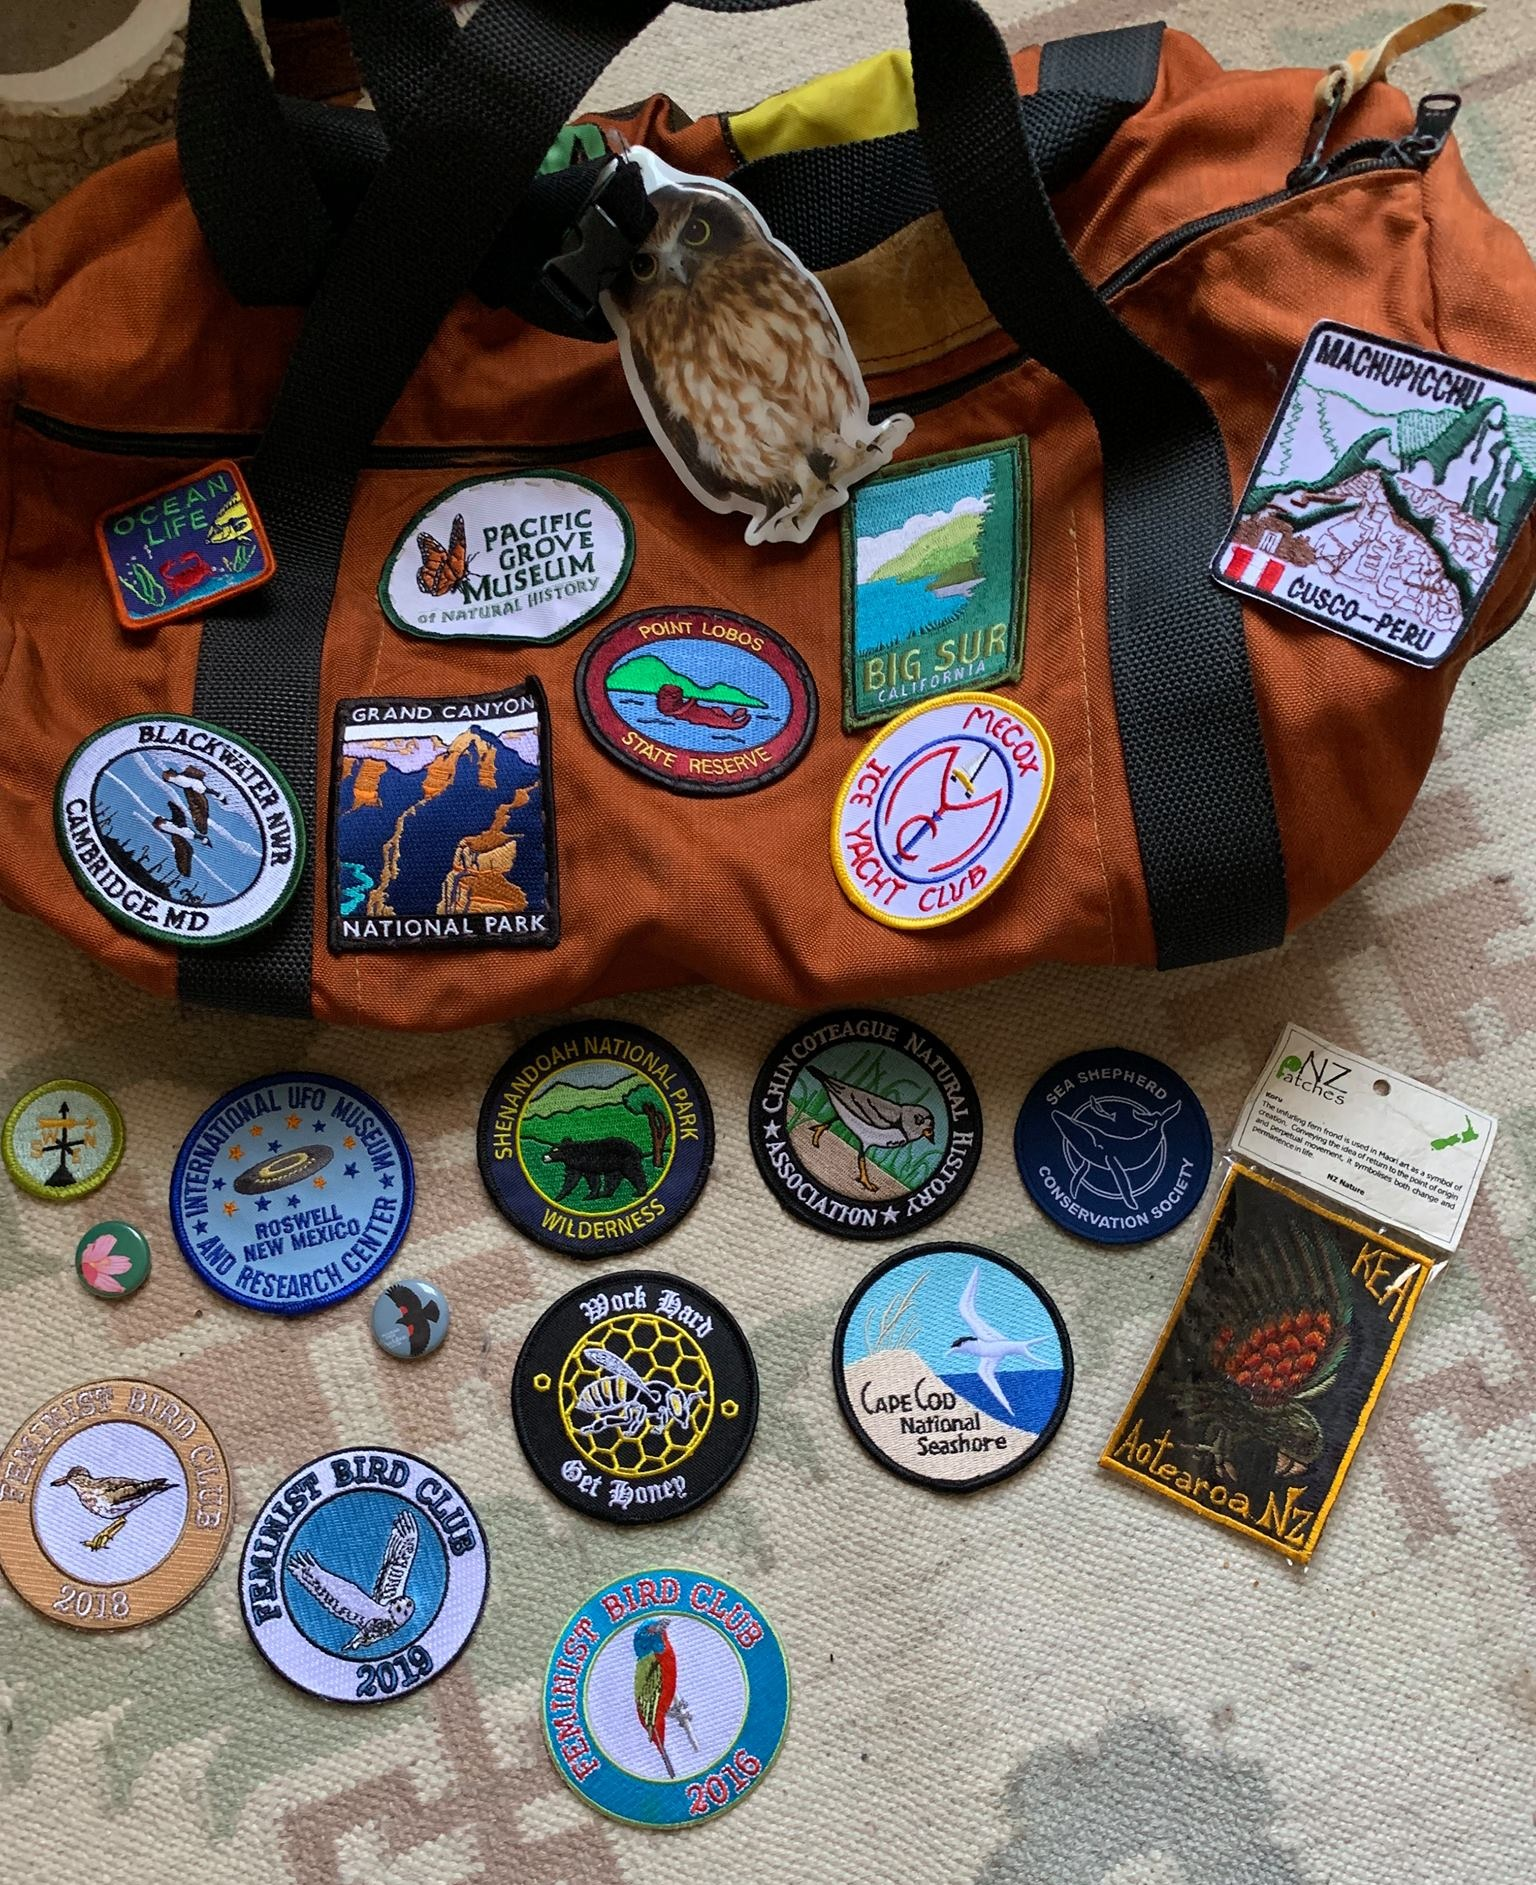 Molly Adams, founder of Feminist Bird Club (FBC) pin and patch collection, including 3 from FBC (bottom left).